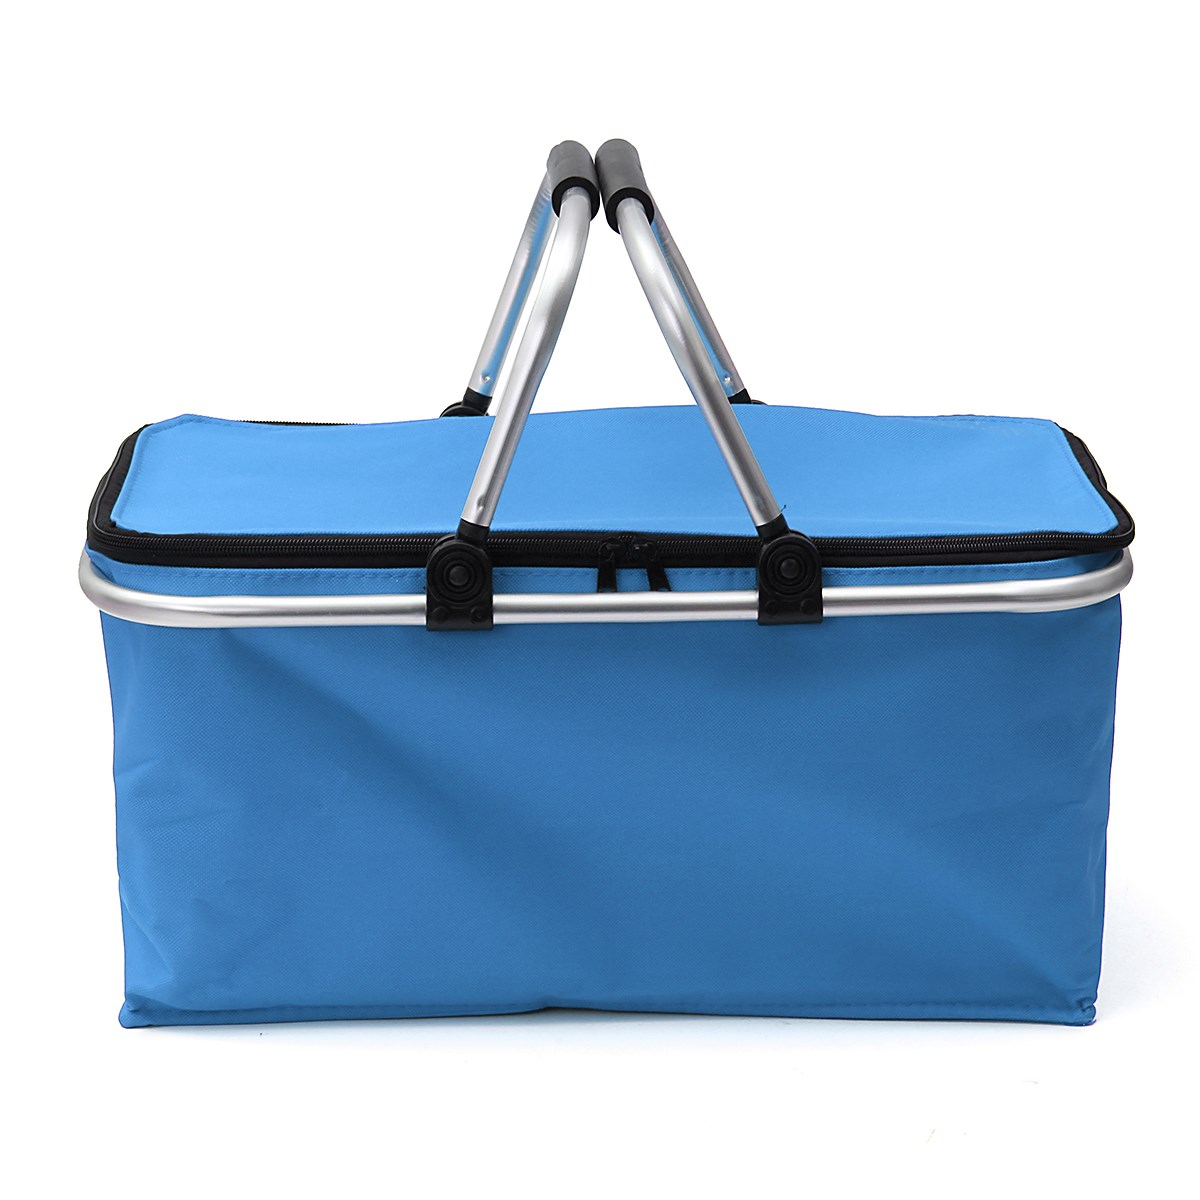 Picnic Baskets Folding Outdoor Camping Cooler Insulated Oxford ...